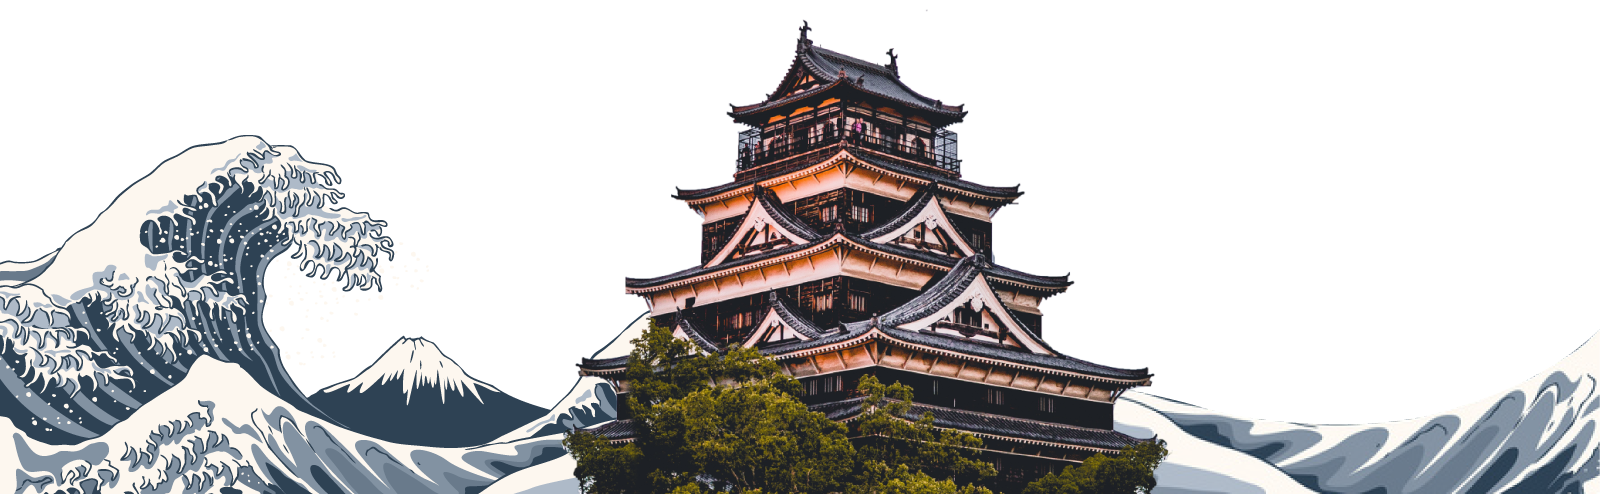 japan travel info japan tourist attractions japan itinerary